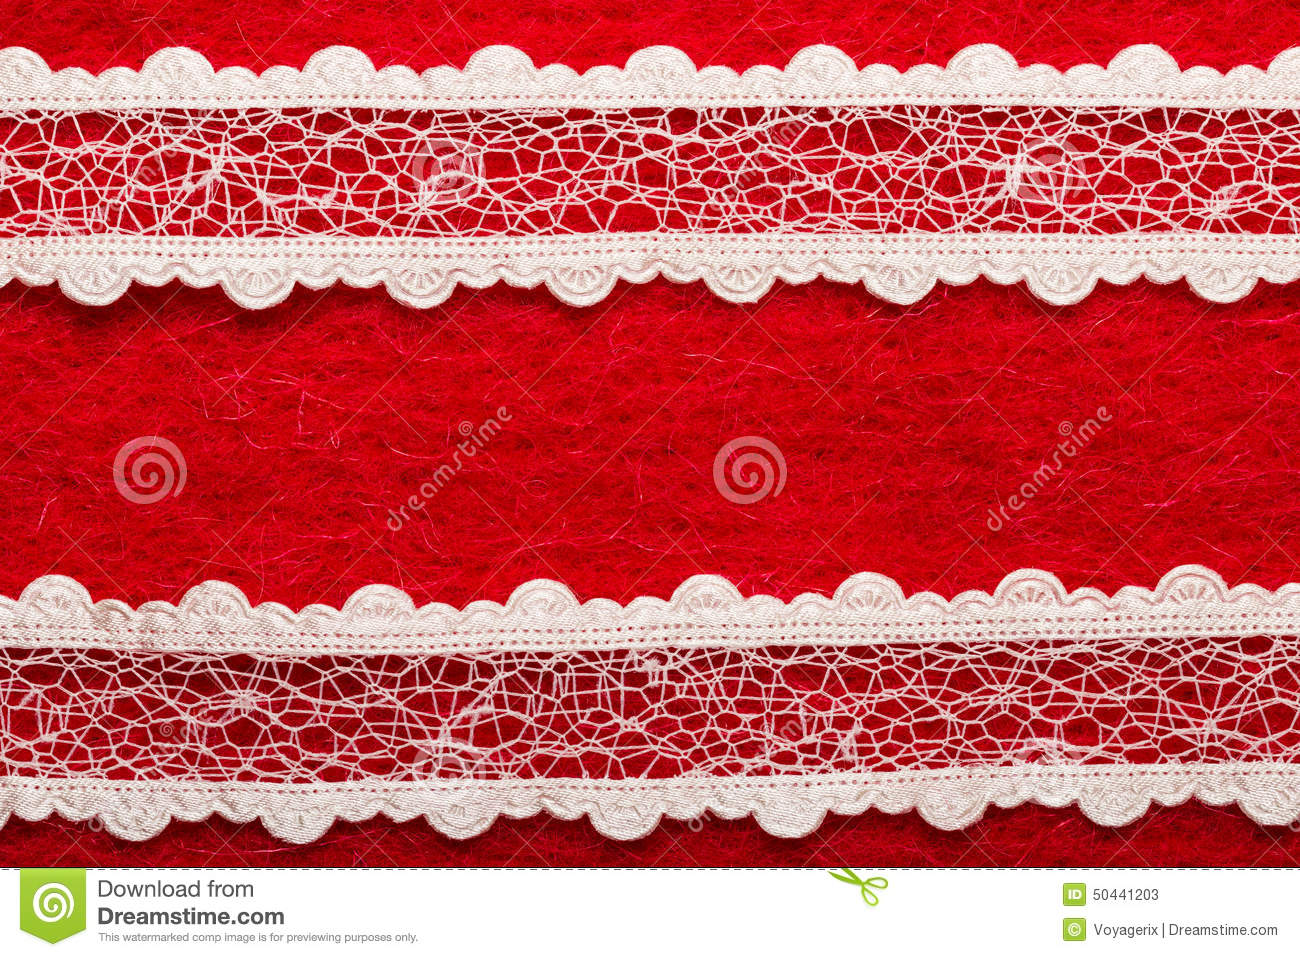 Vintage white lace over red background